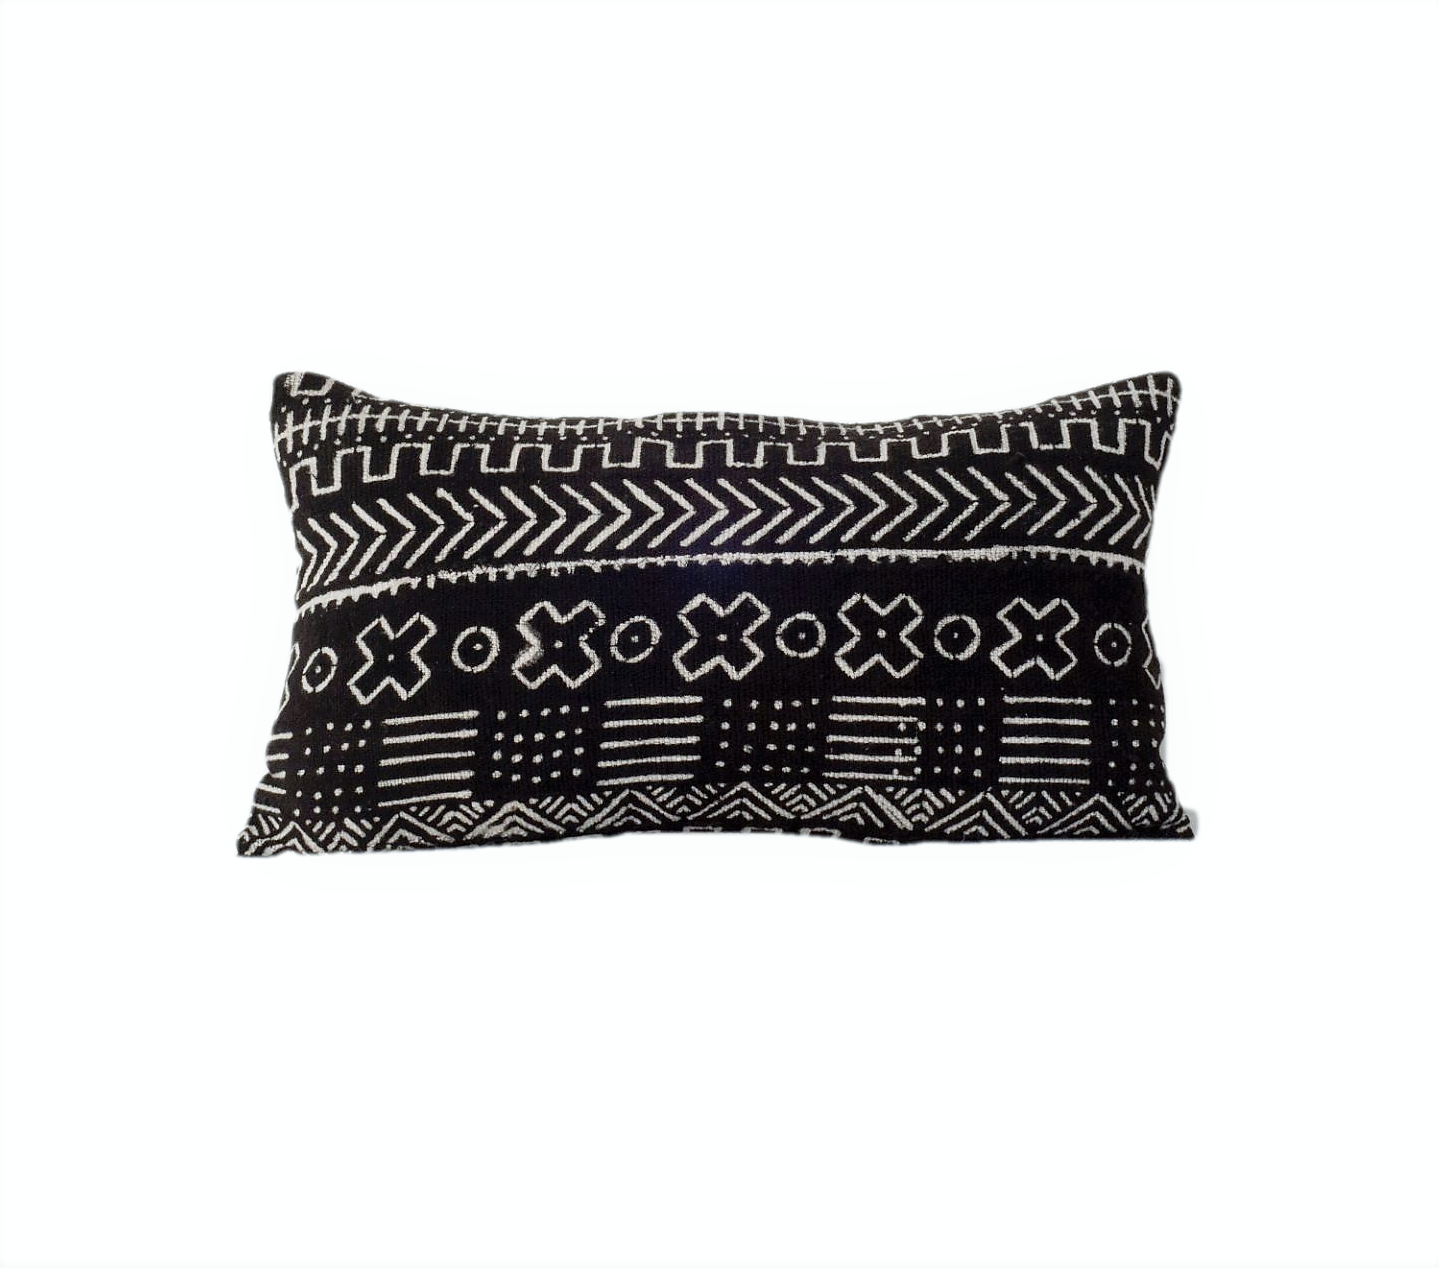 Ethical black mudcloth cushion made by former refugees using traditionally made artisan-crafted fabric. Contemporary global interior style with soul